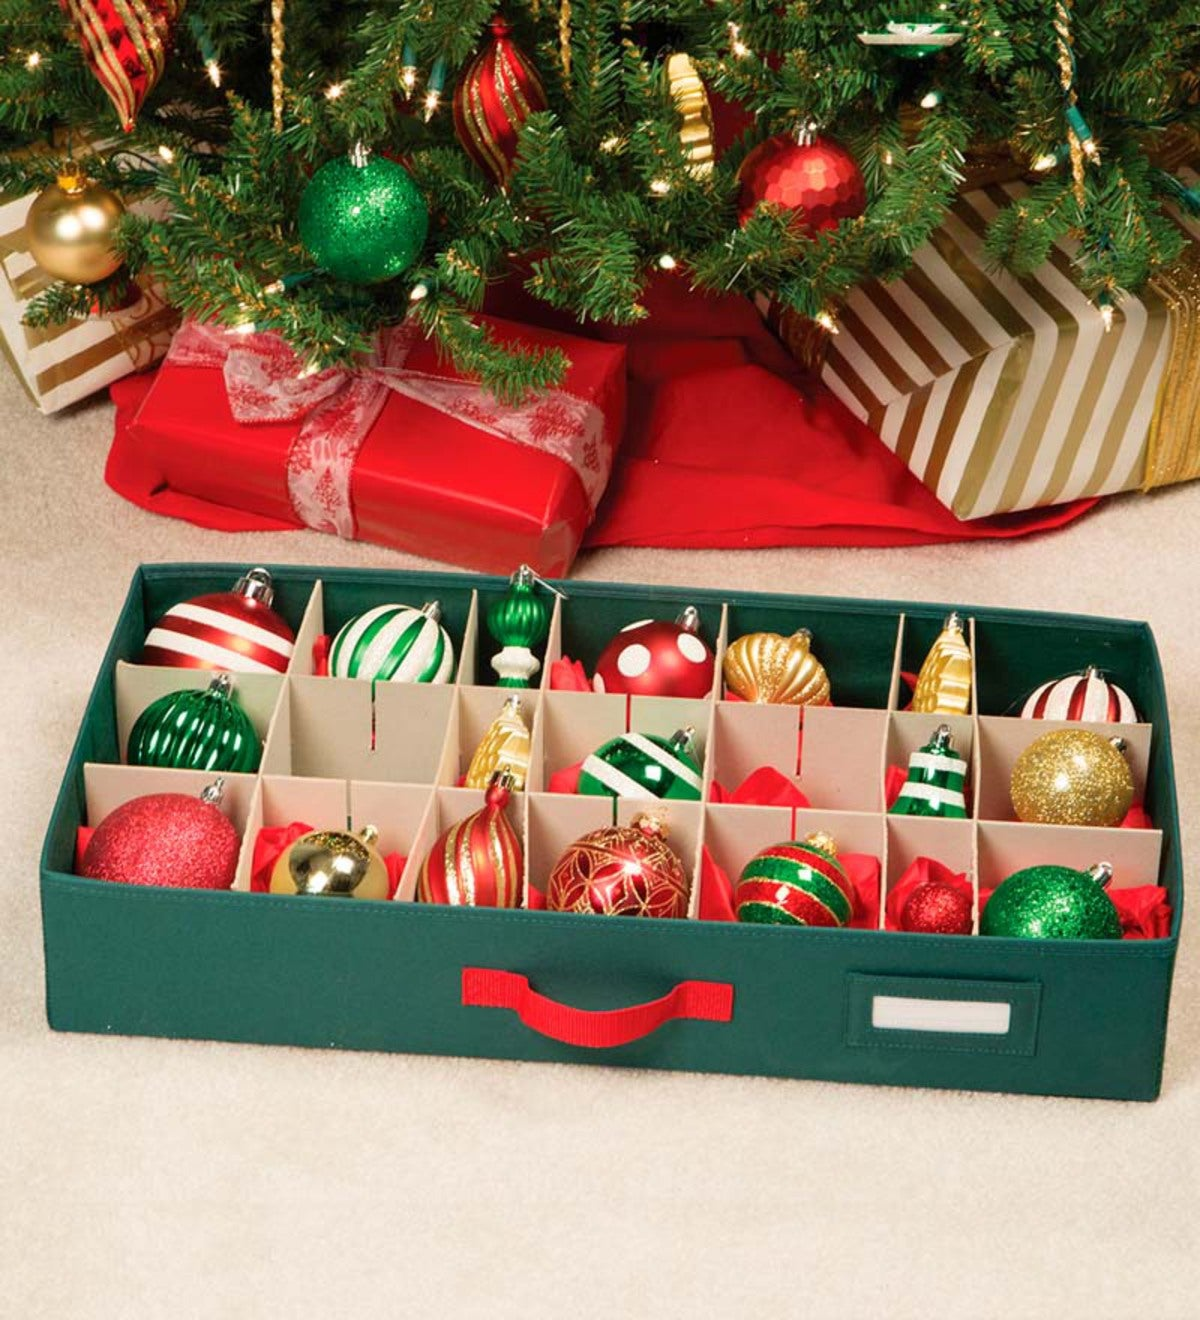 Christmas Ornament Storage.Christmas Ornament Storage Chest With Drawers Plowhearth